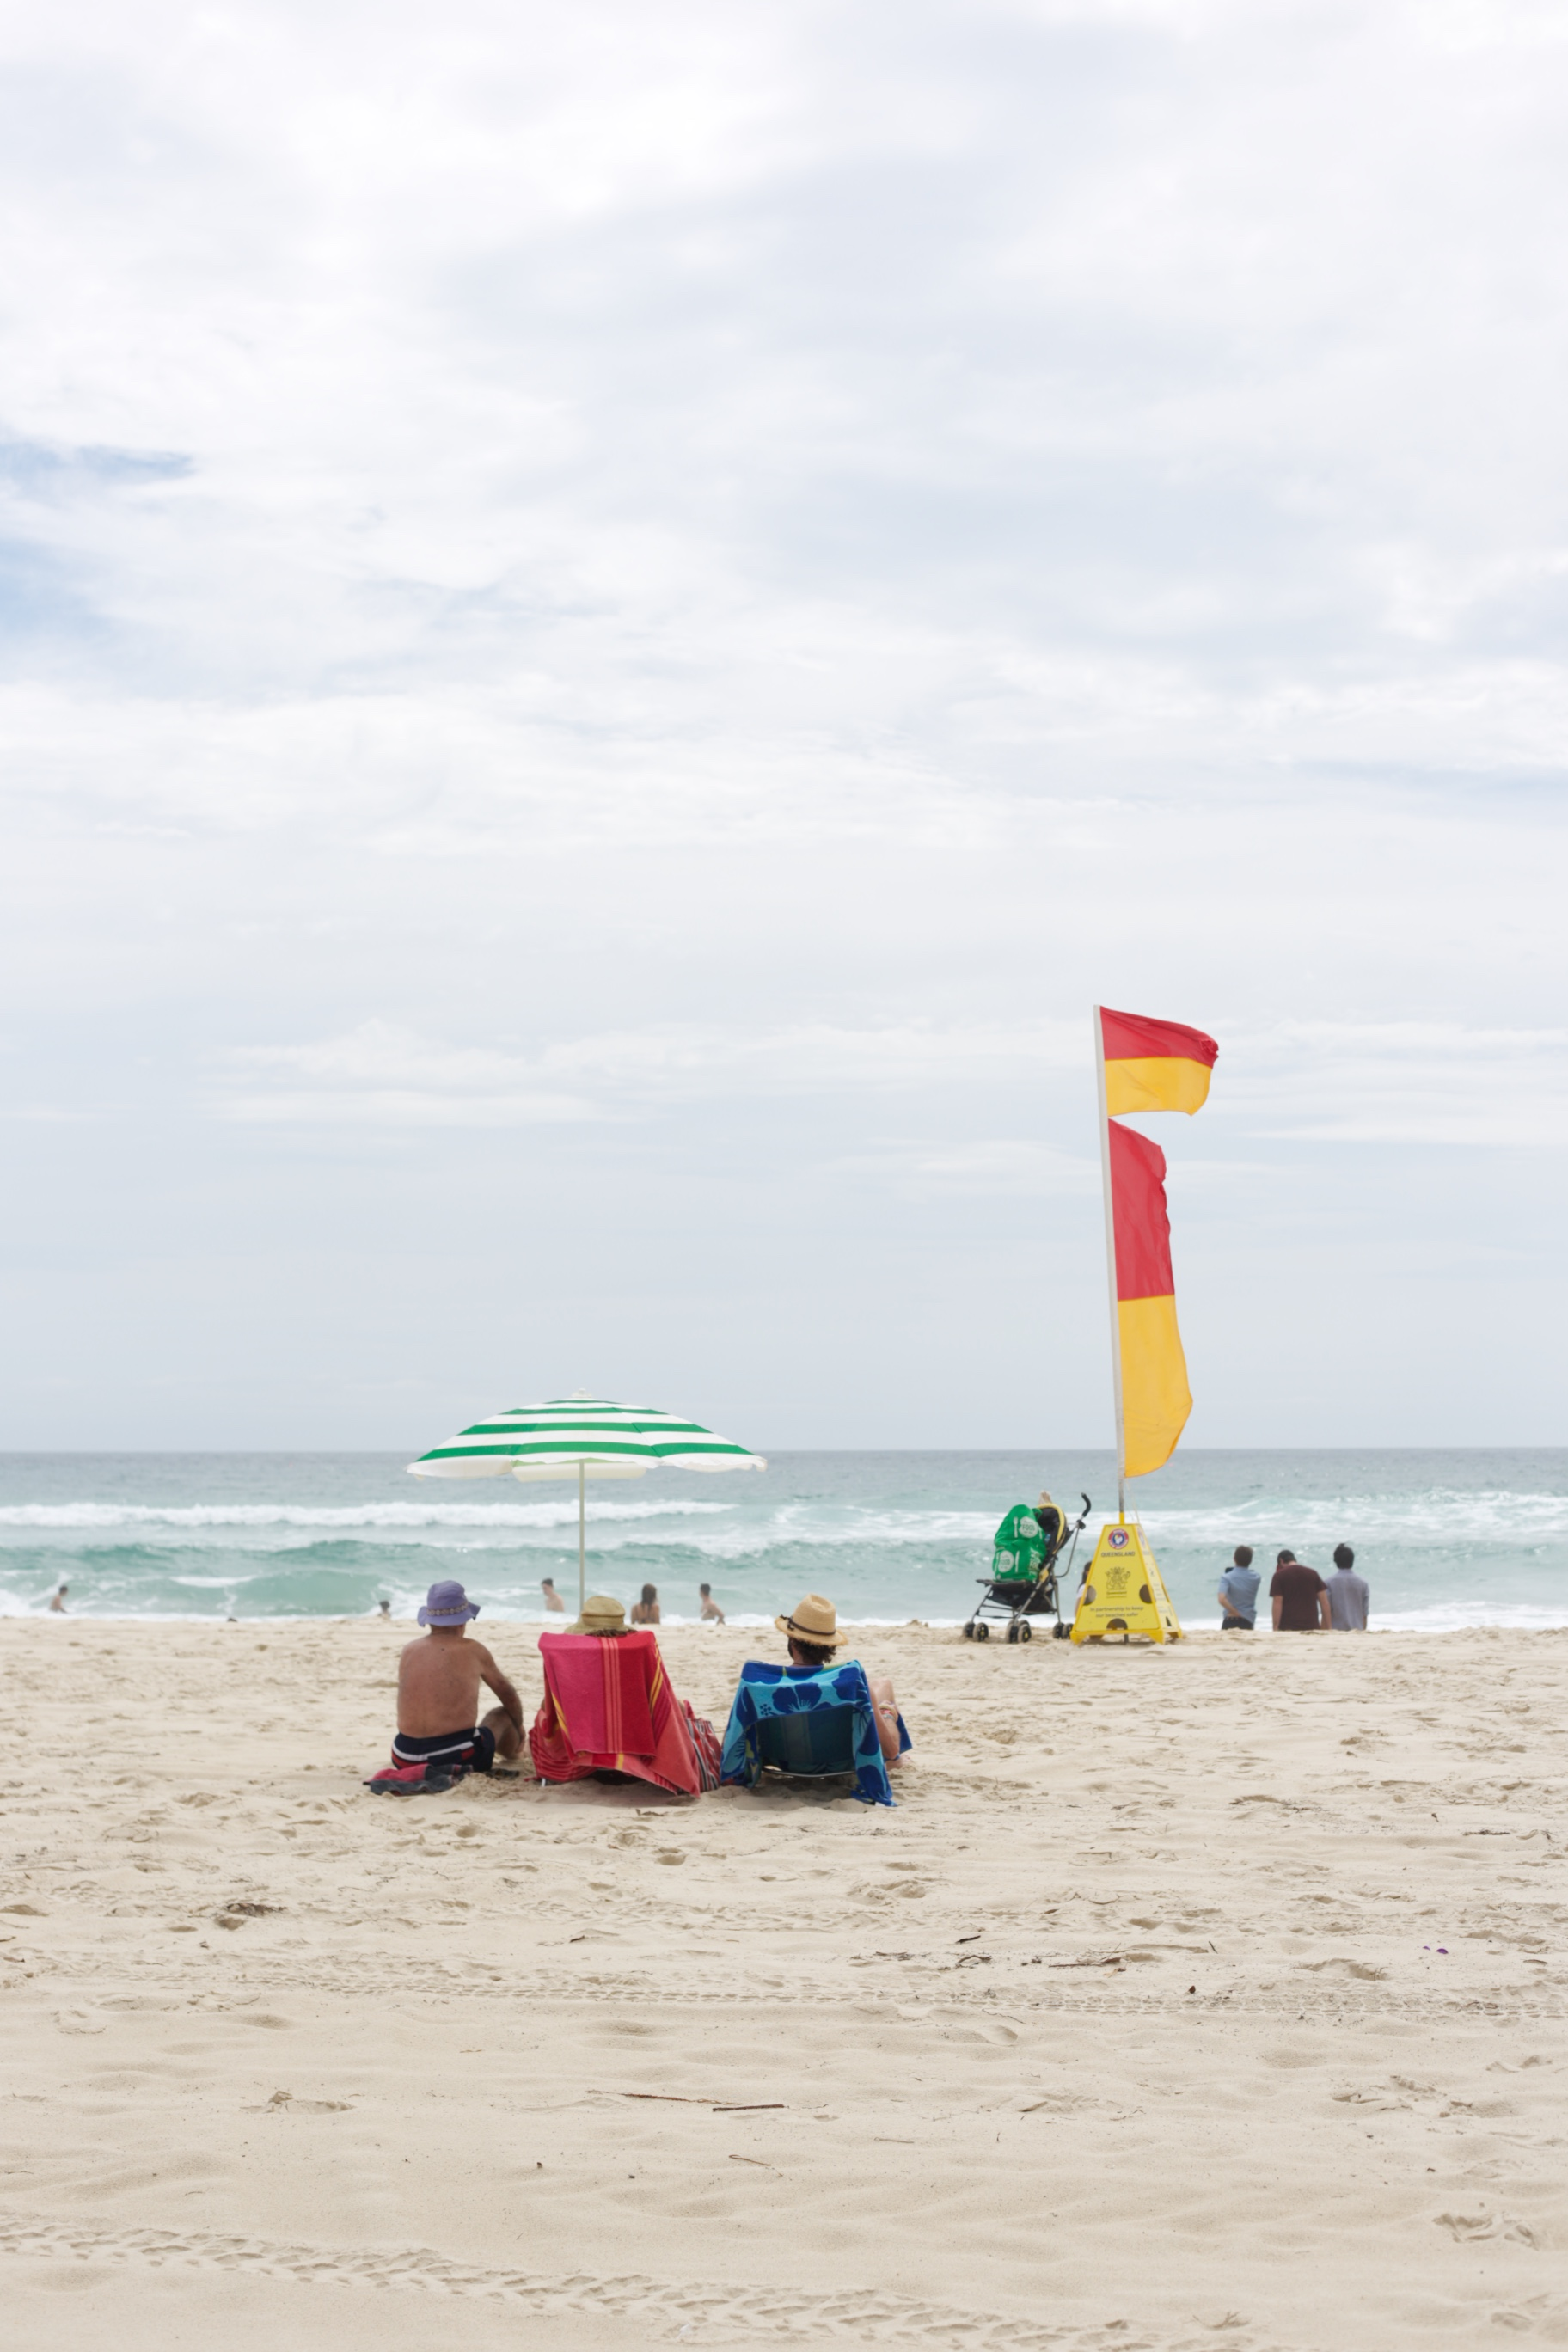 On the beach in Brisbane, between the flags, Australia.